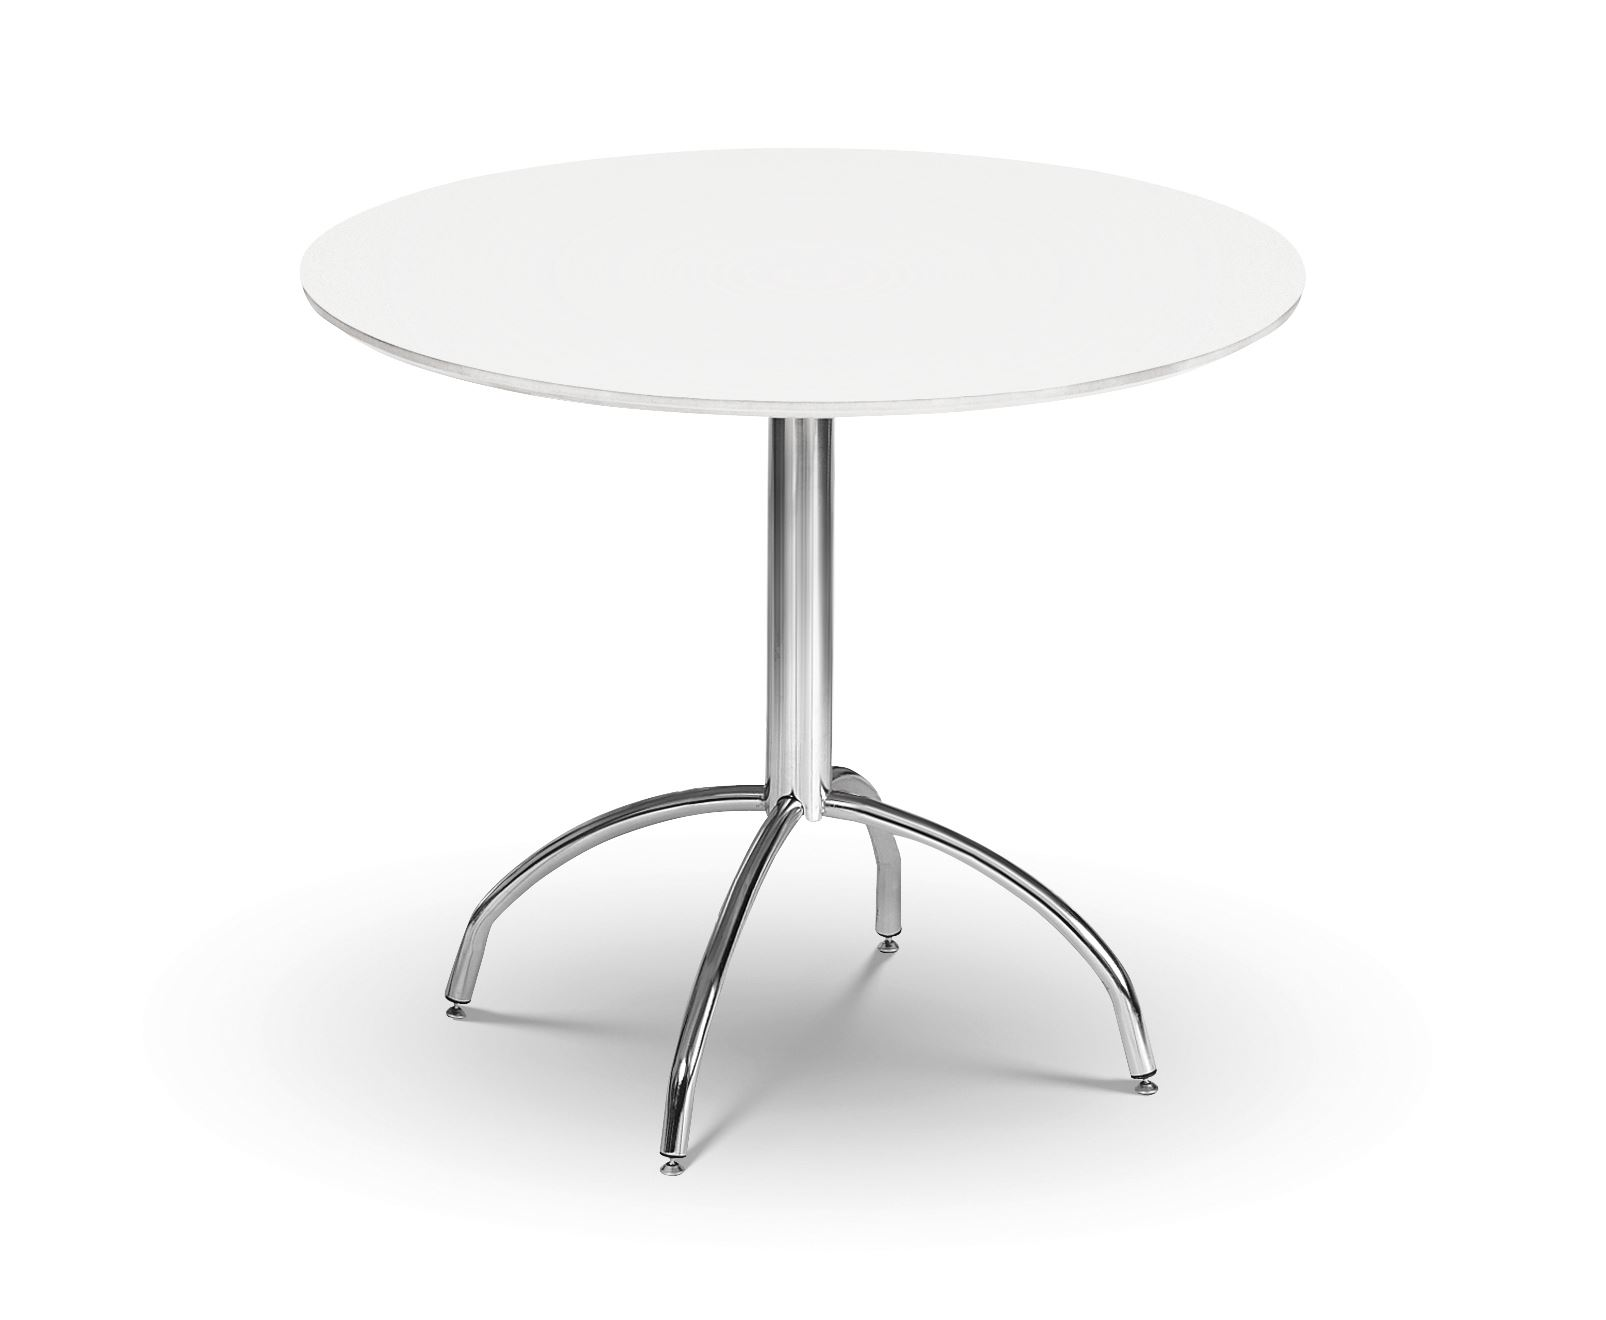 Julian Bowen Mandy Bistro Dining Table FADS Dining Table  : bsrb507tab from www.fads.co.uk size 1606 x 1320 jpeg 62kB